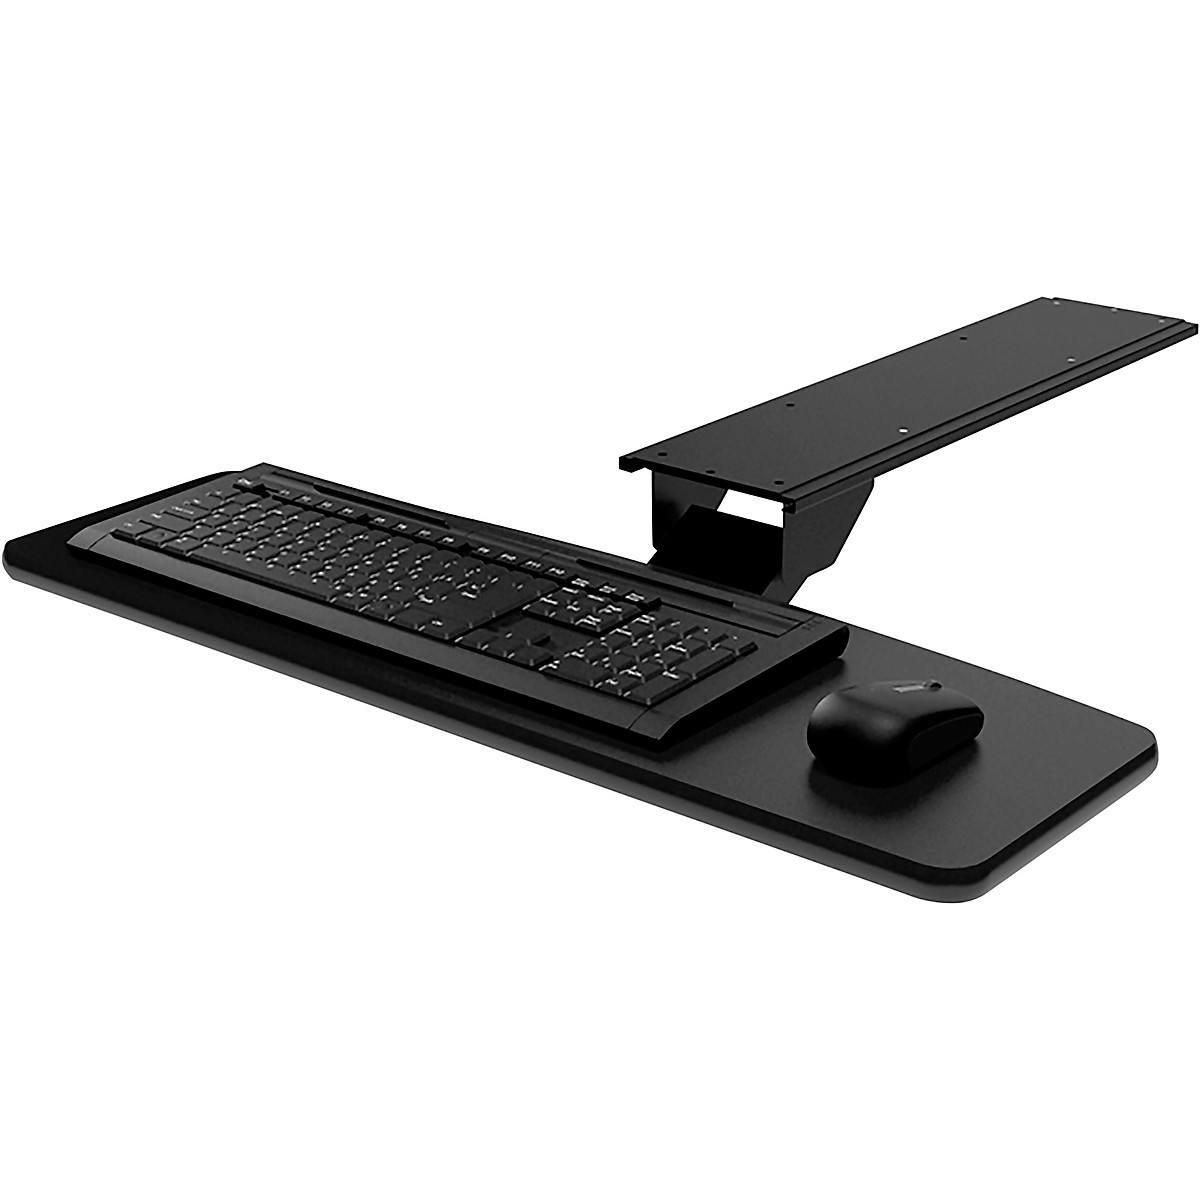 Omnirax KMSOM Adjustable Computer Keyboard Mouse Shelf - Black